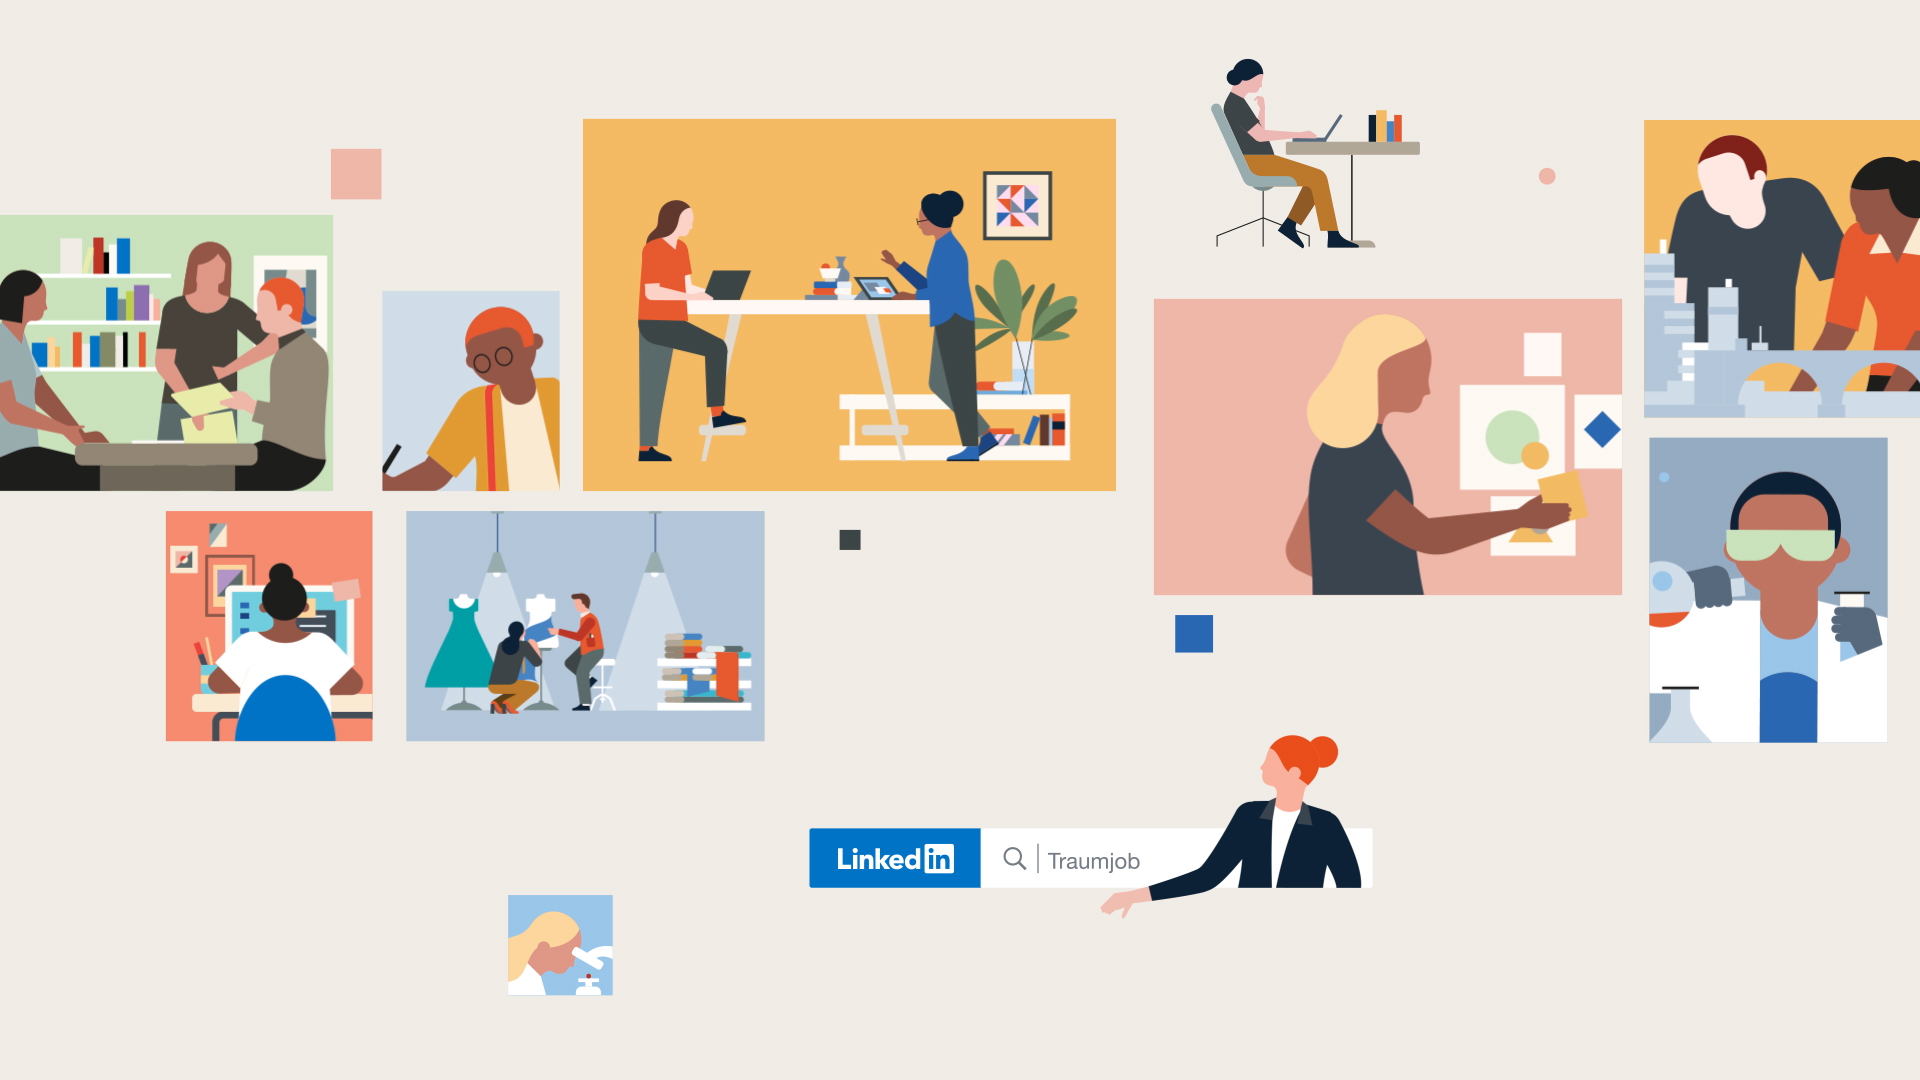 Illustration of people working from Linkedin by Dani Montesinos